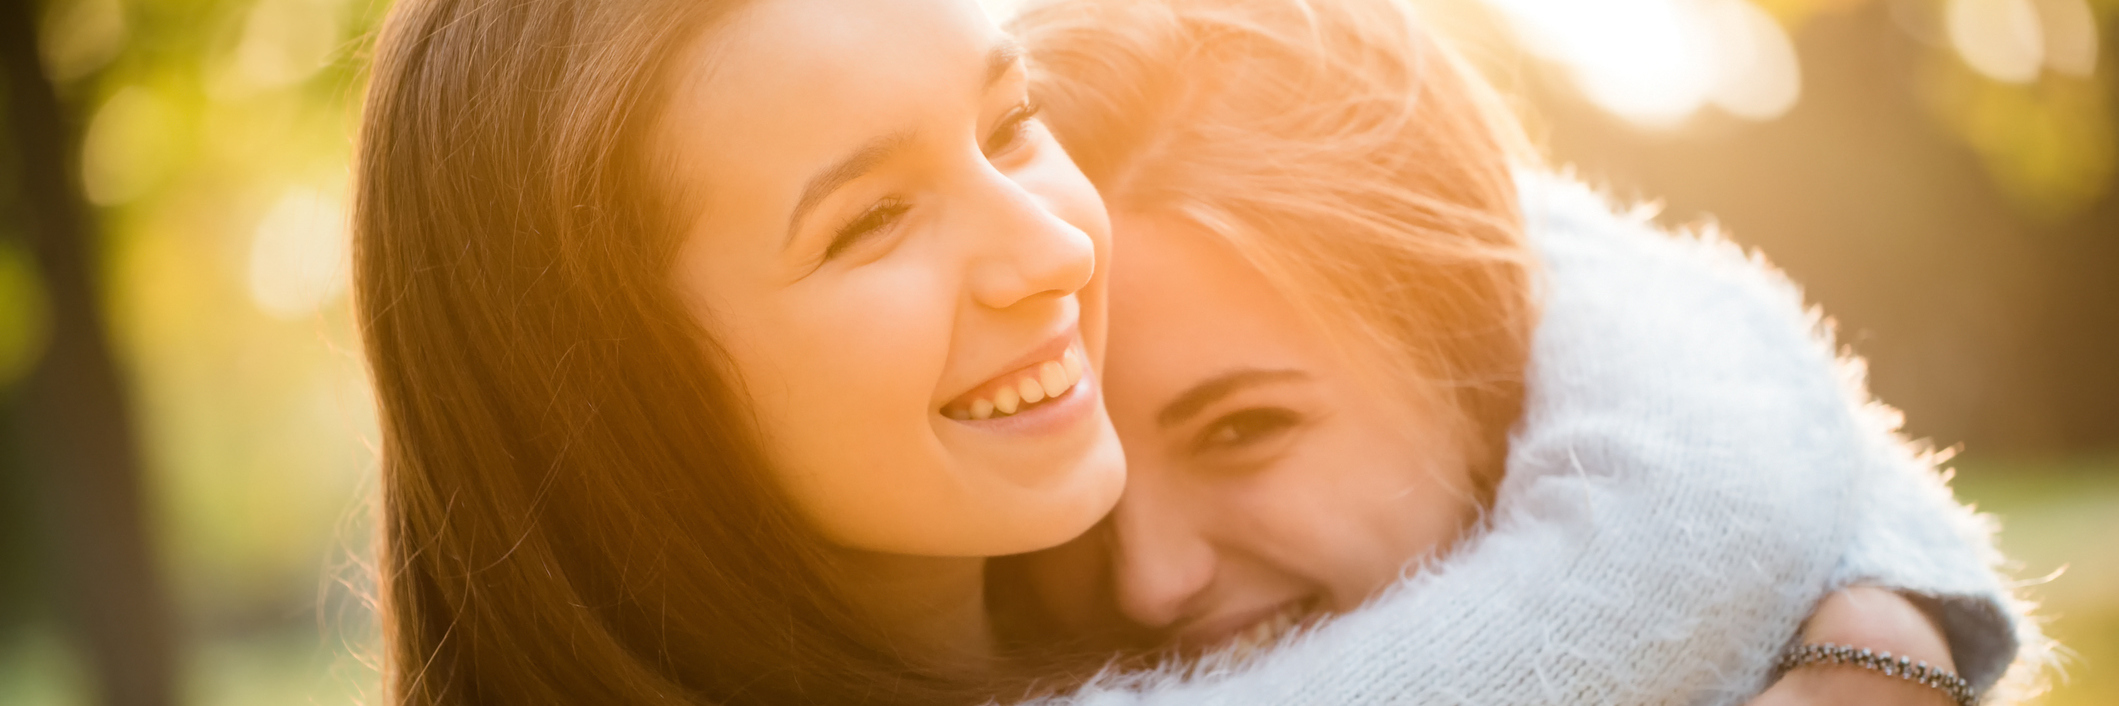 two friends hugging outdoors